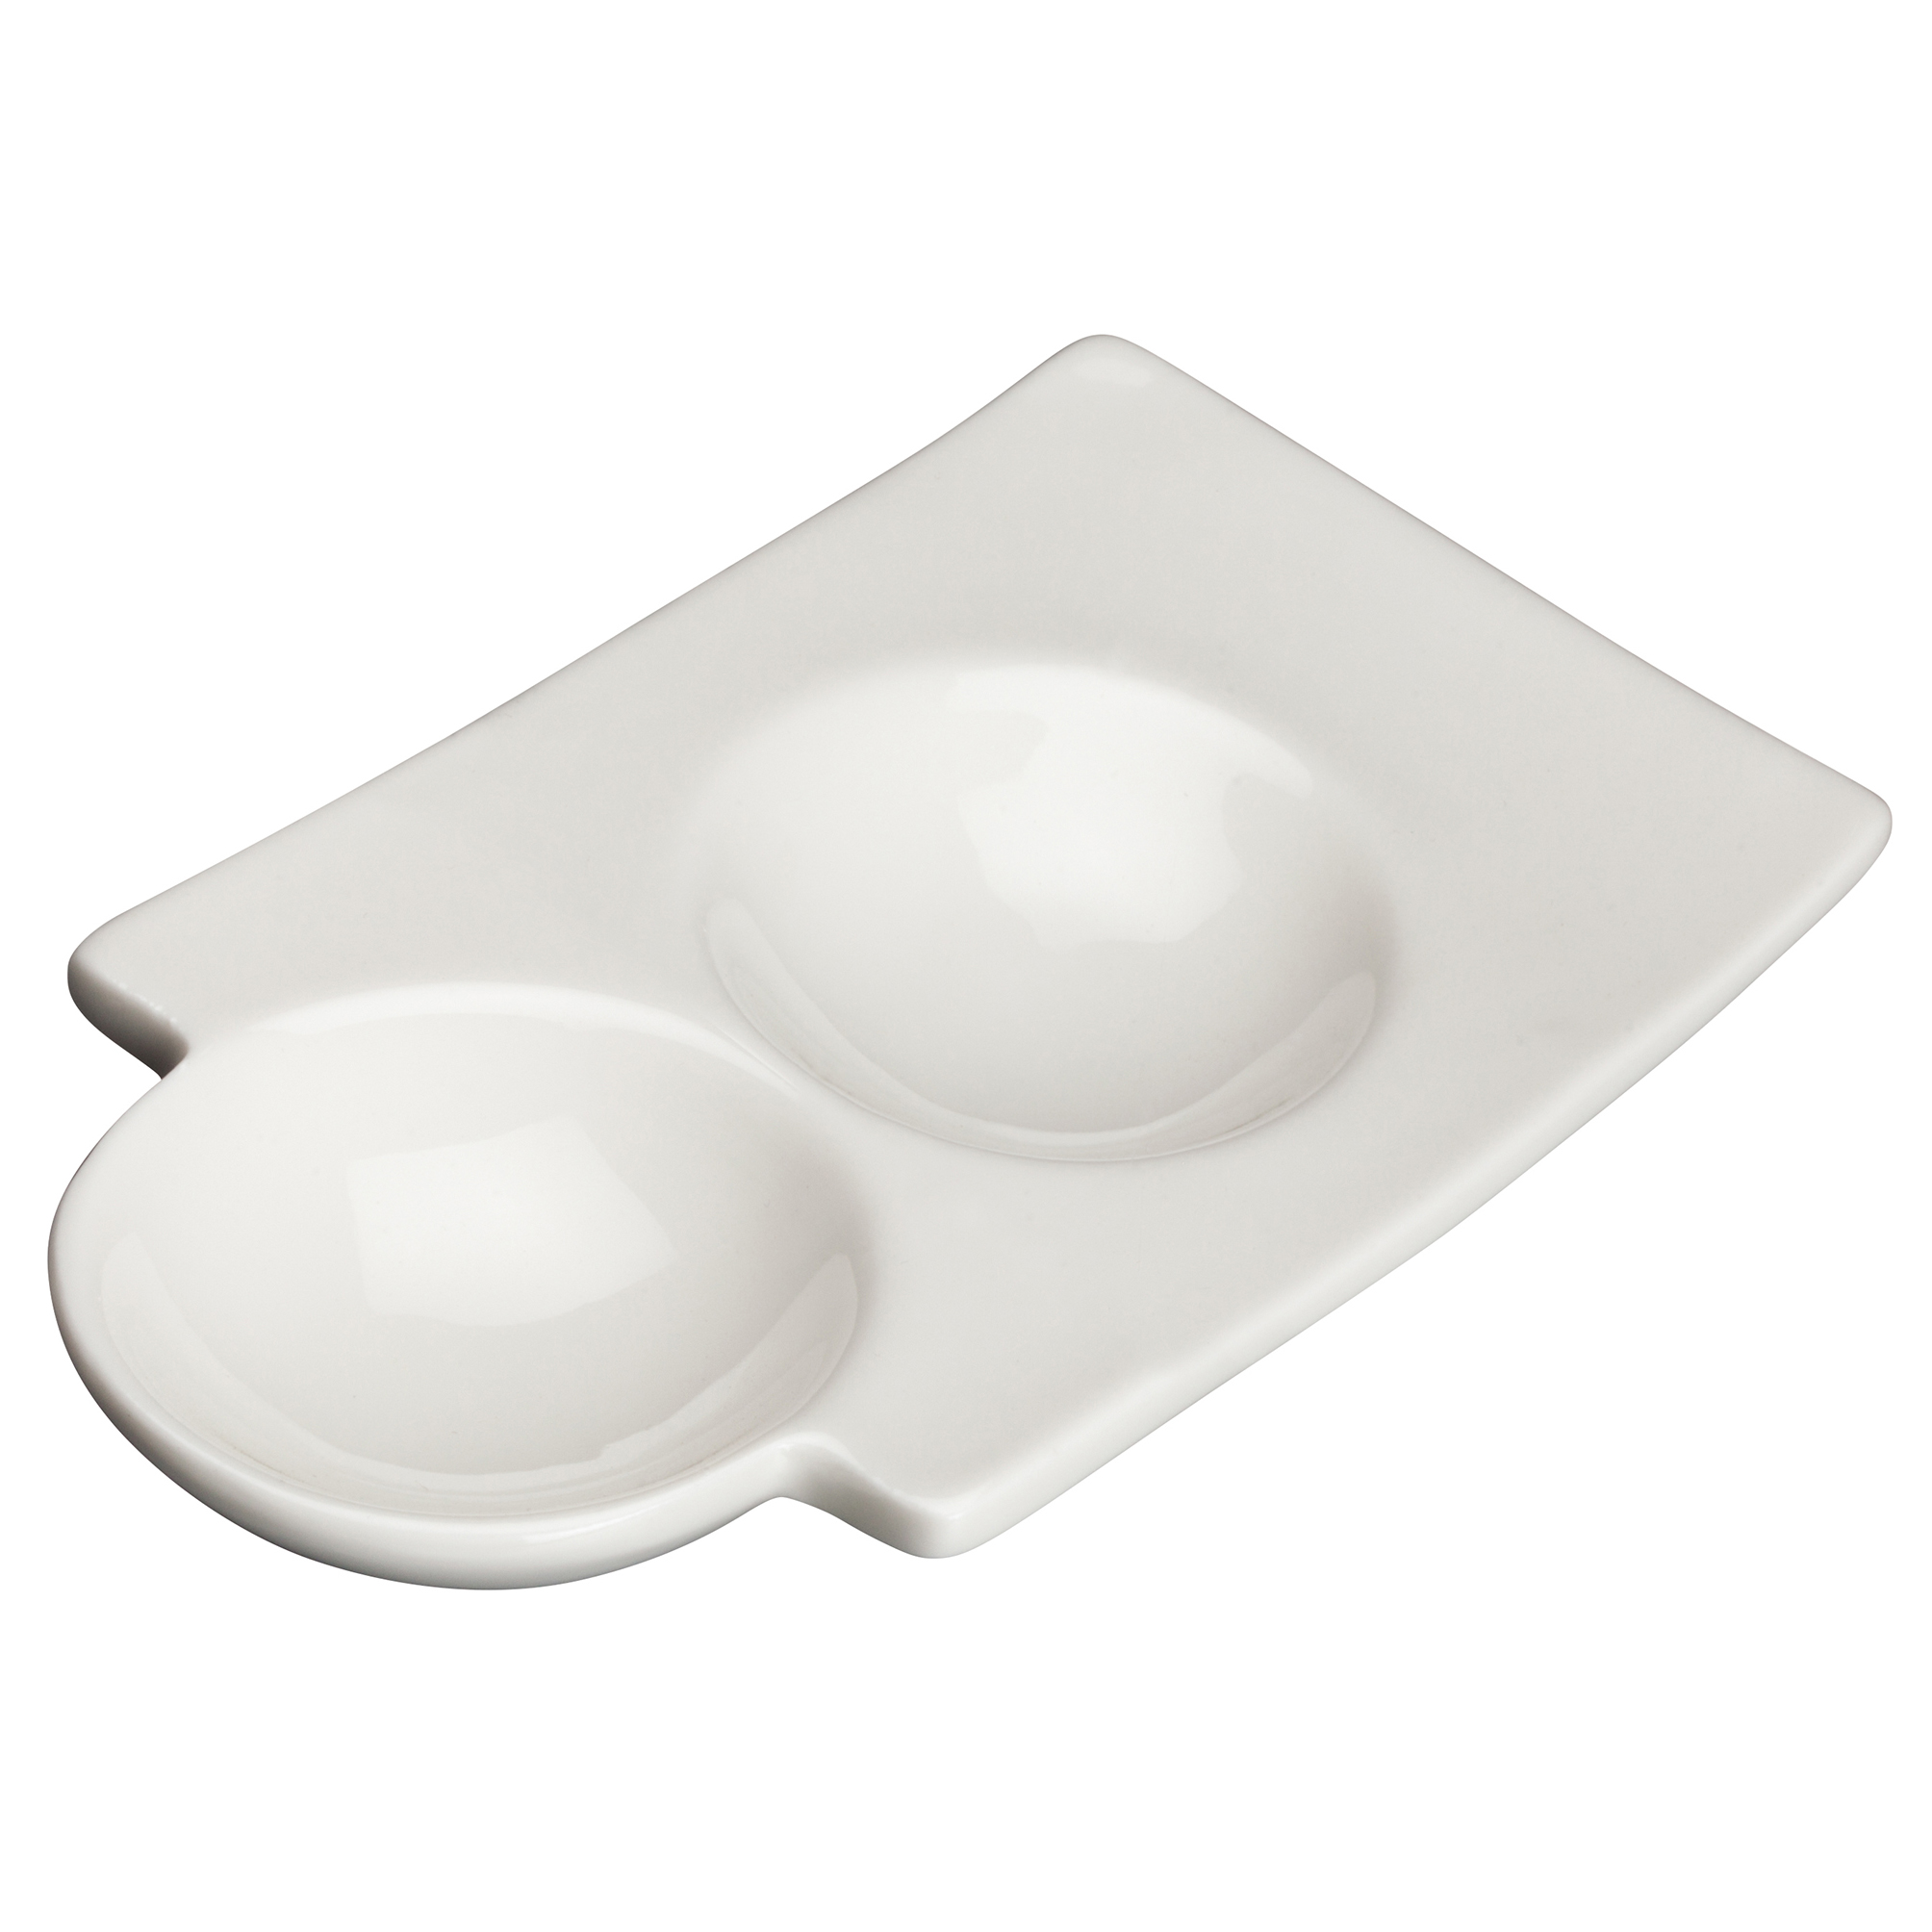 Winco WDP017-106 china, compartment dish bowl